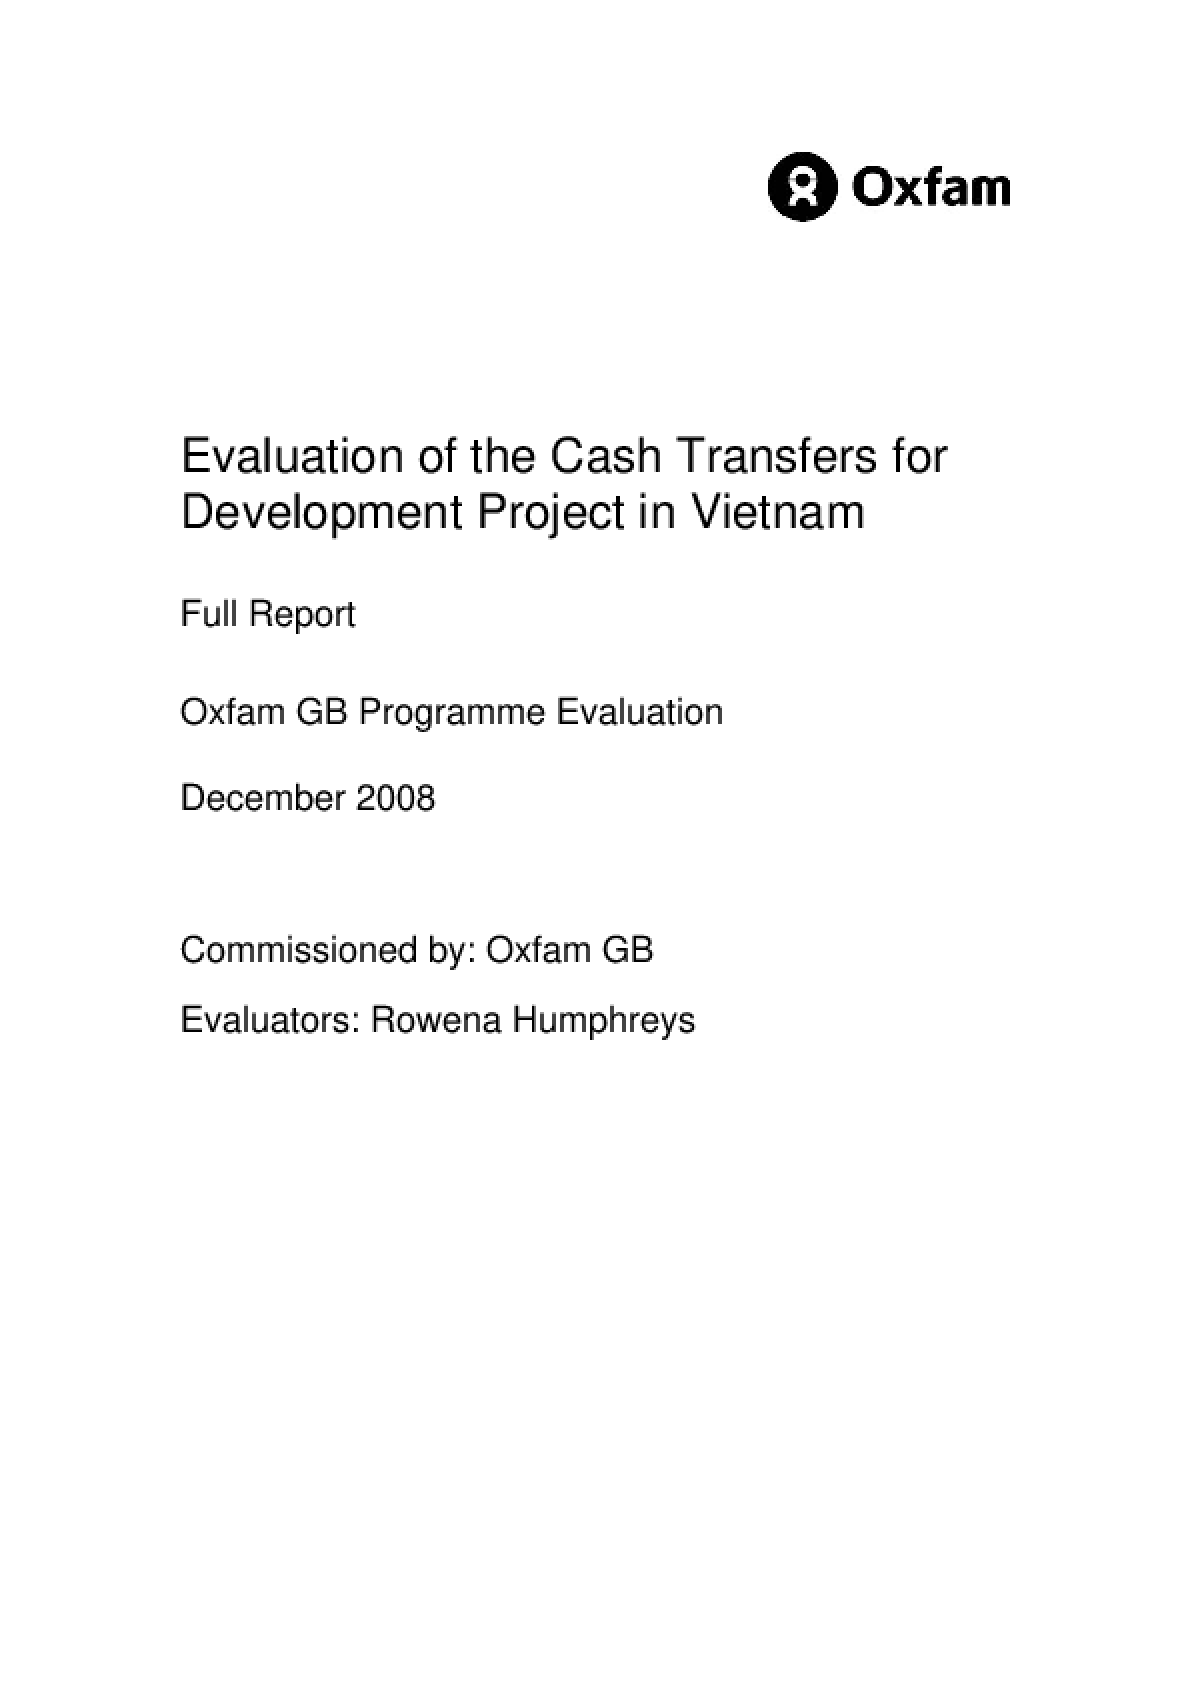 Evaluation of the Cash Transfers for Development Project in Vietnam